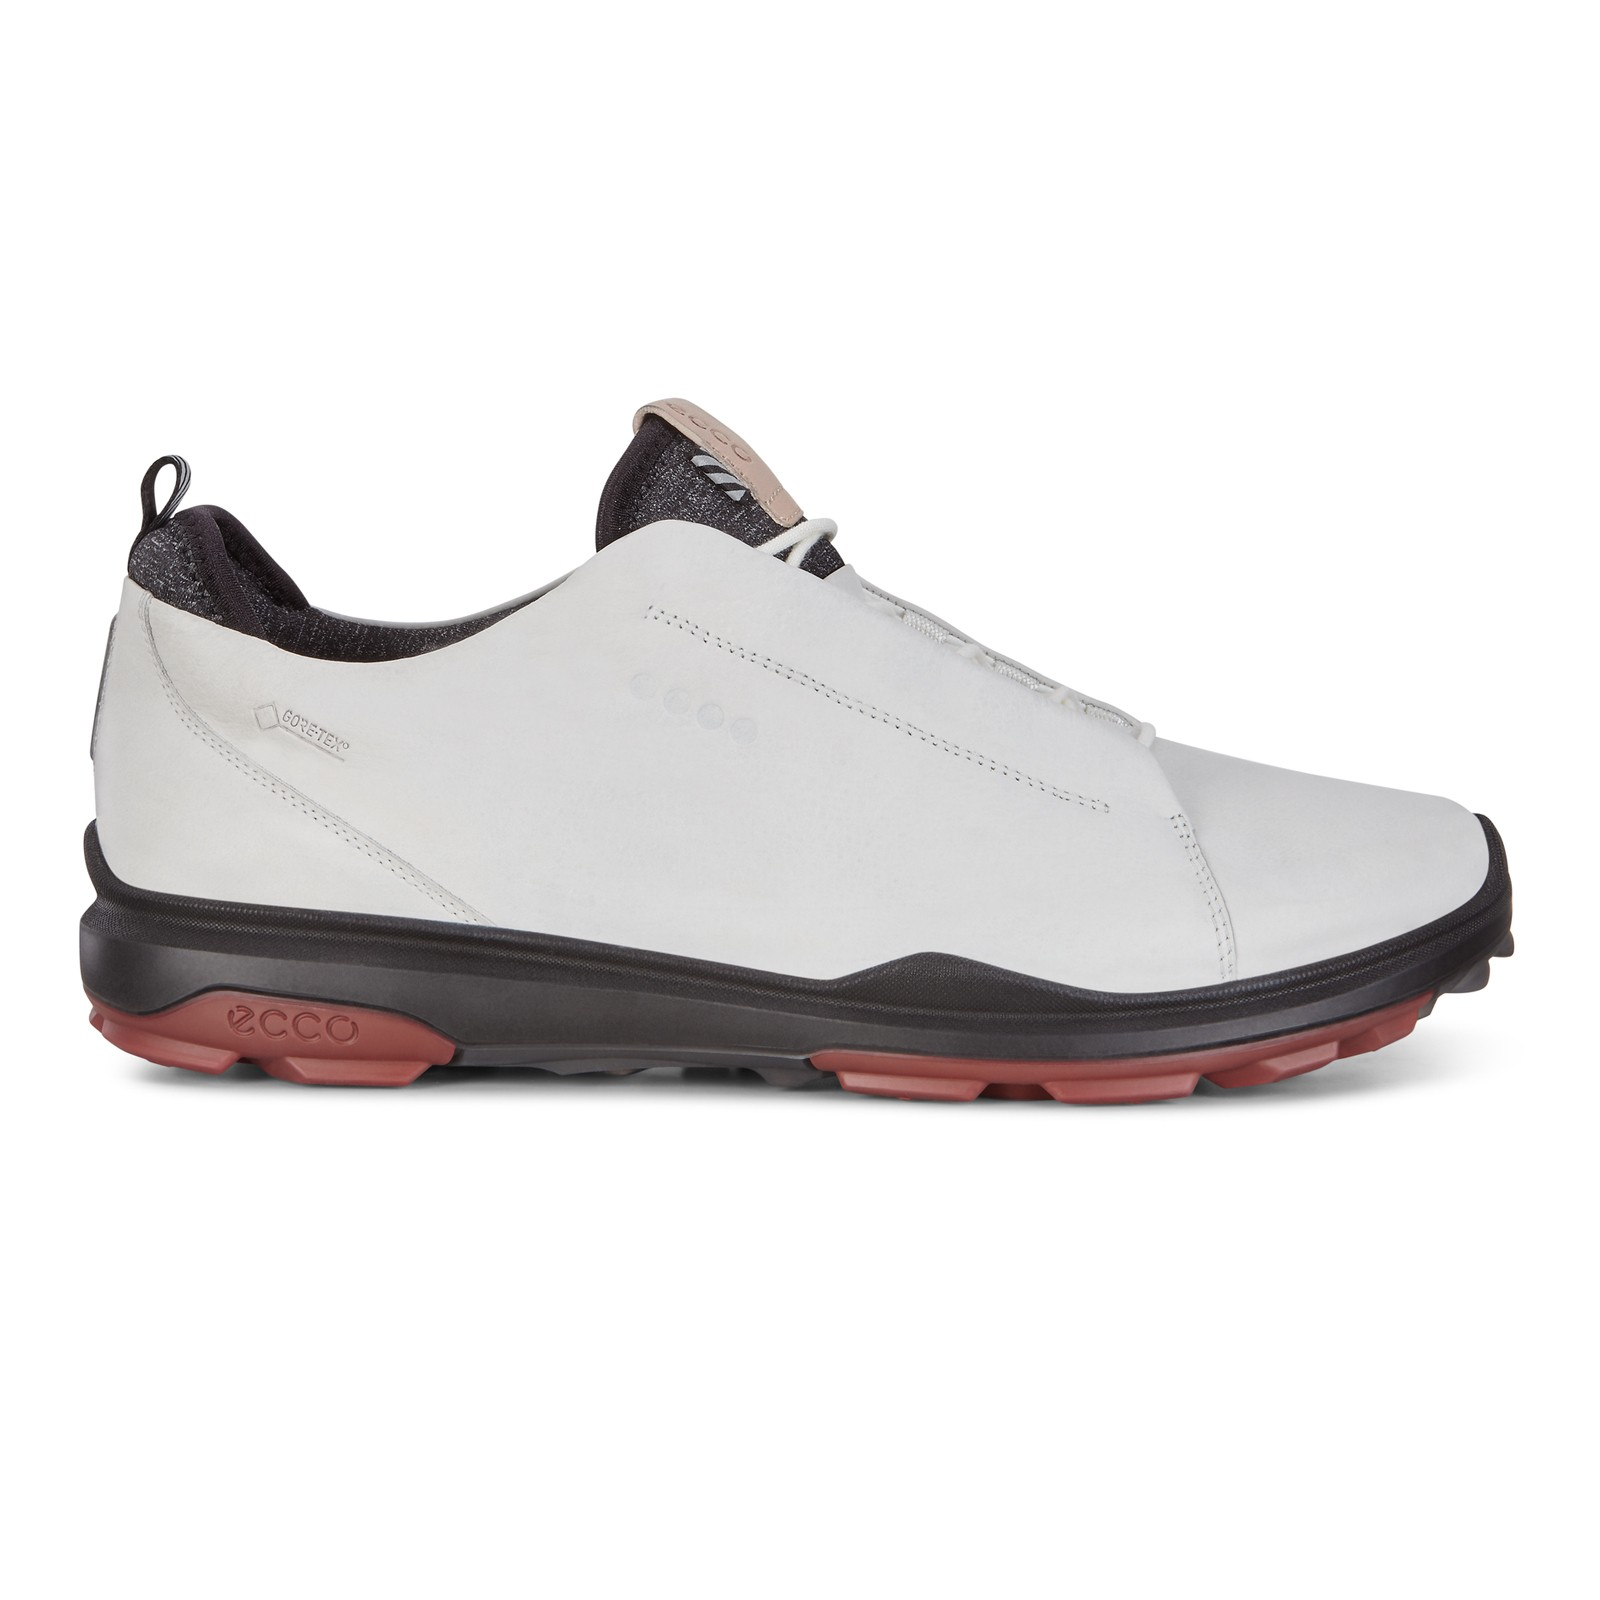 795618a7203f Ecco Biom Hybrid 3 Golf Shoes